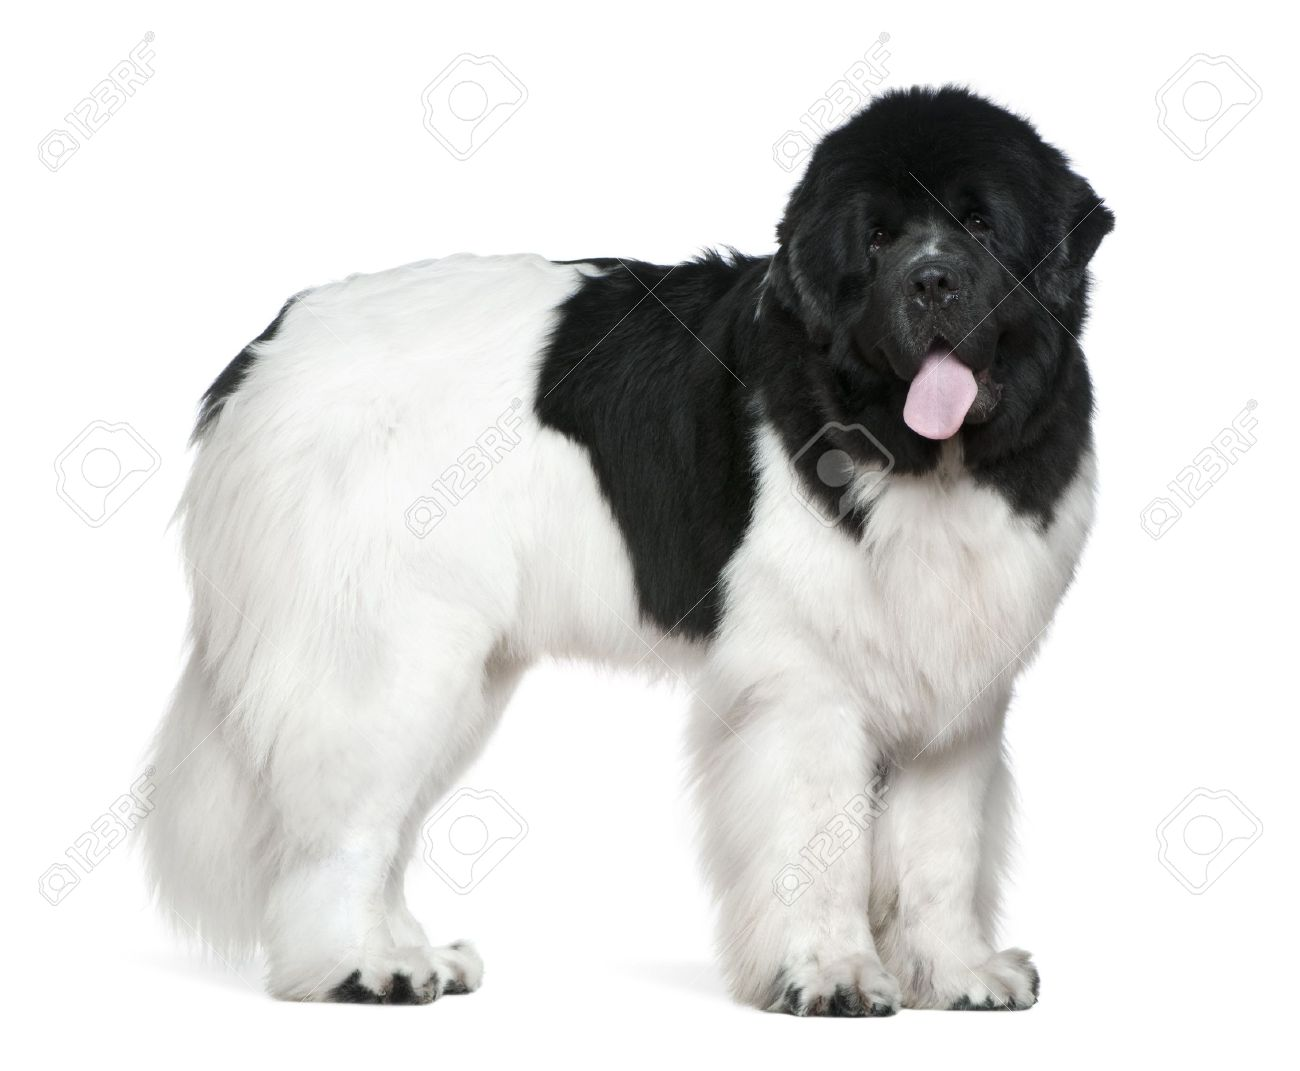 35 very beautiful newfoundland dog pictures - 16 Months Old Black And White Newfoundland Dog